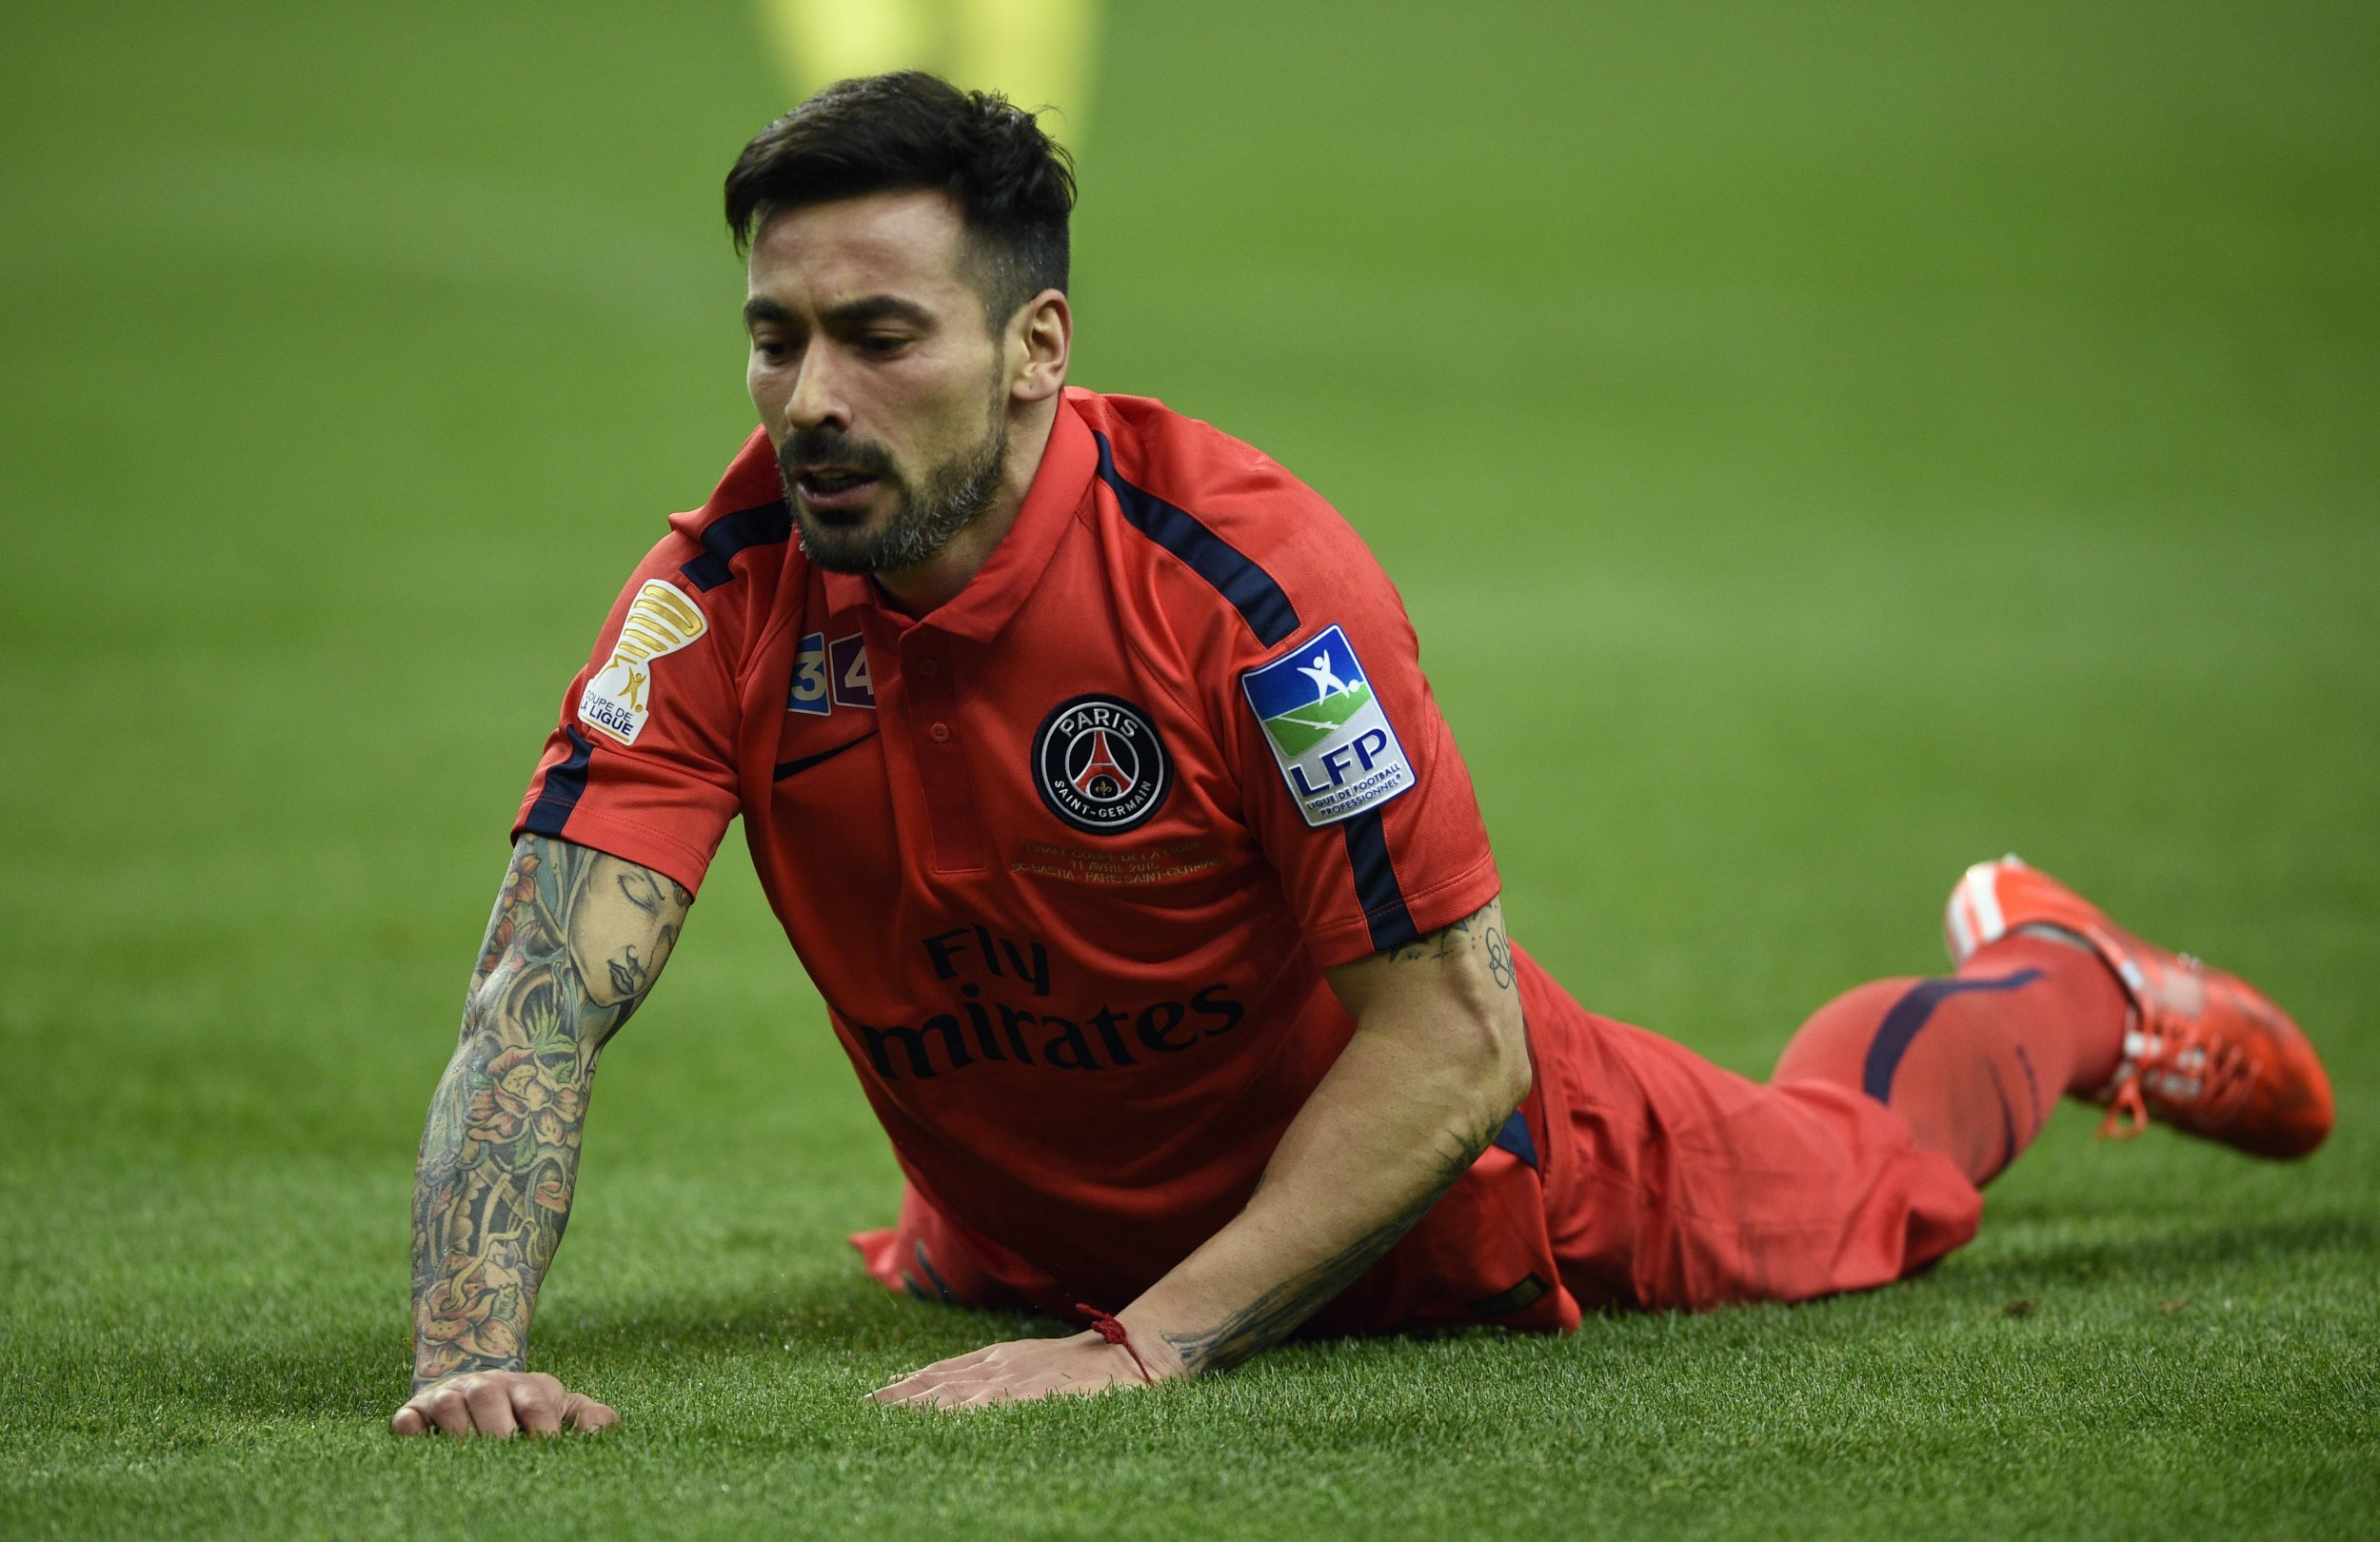 Ezequiel Lavezzi has moved to Hebei Fortune in China.